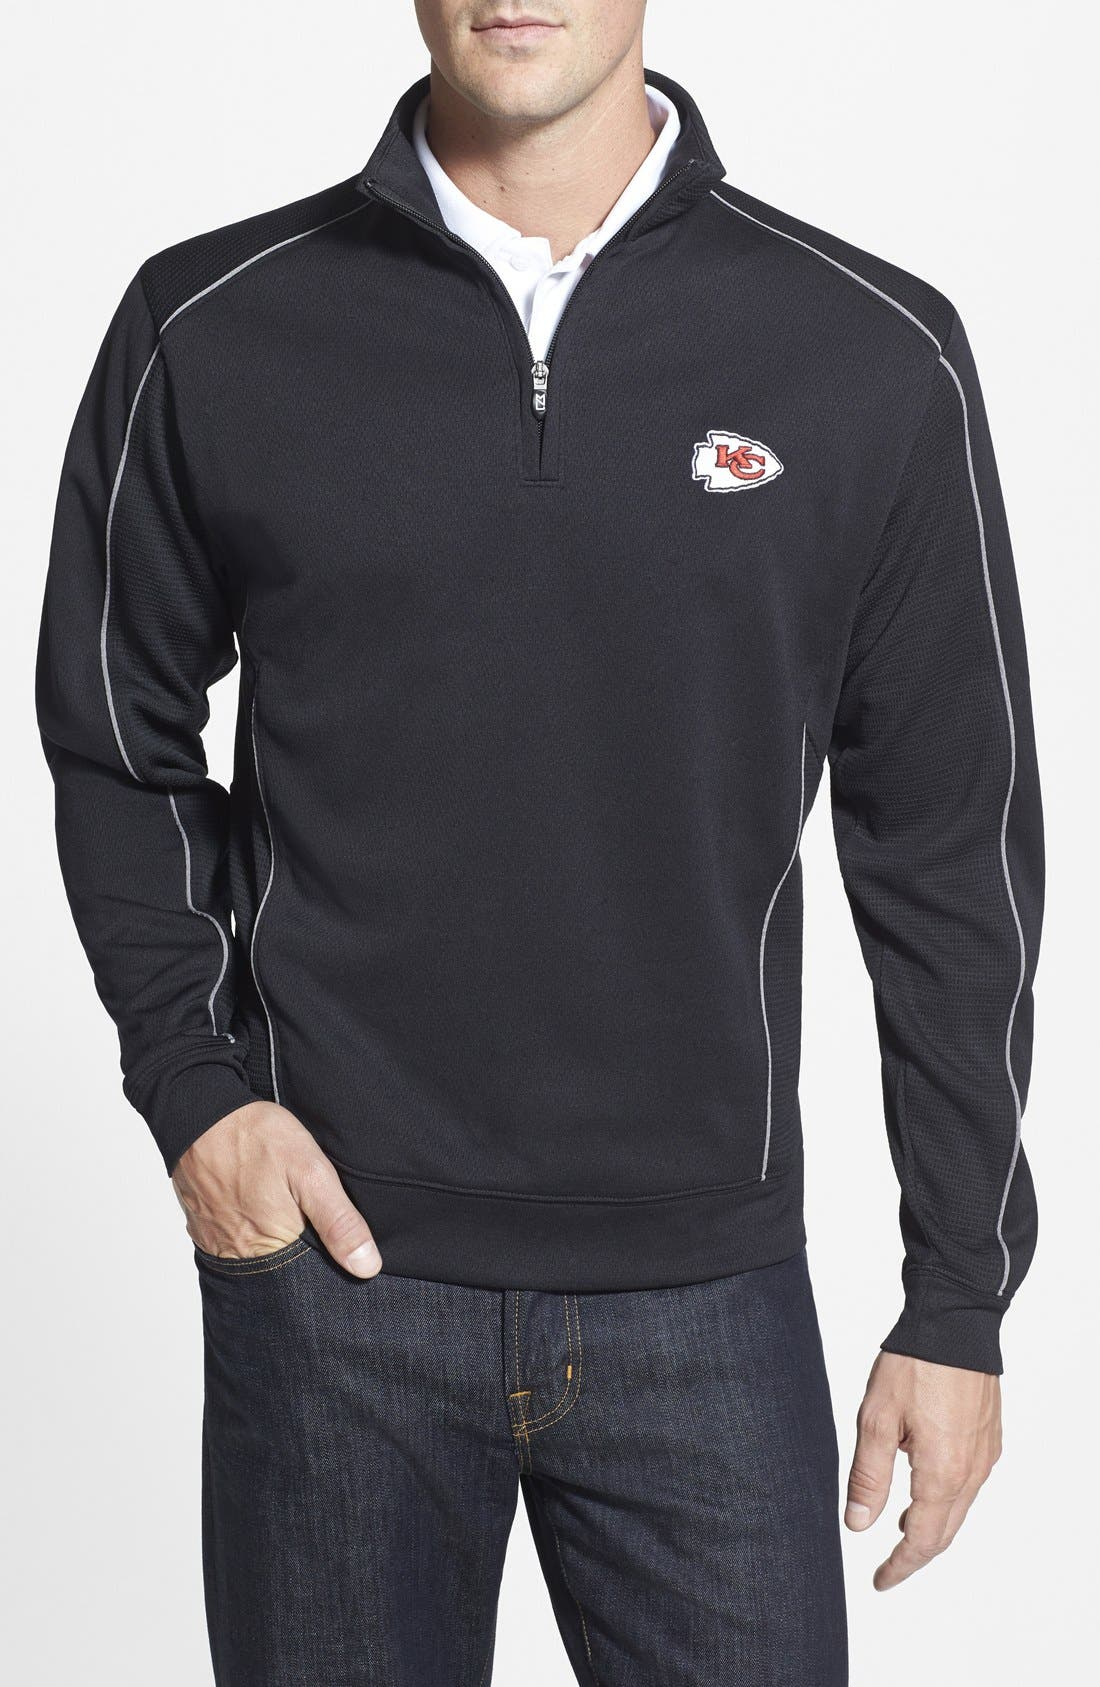 Cutter & Buck 'Kansas City Chiefs - Edge' DryTec Moisture Wicking Half Zip Pullover (Big & Tall)